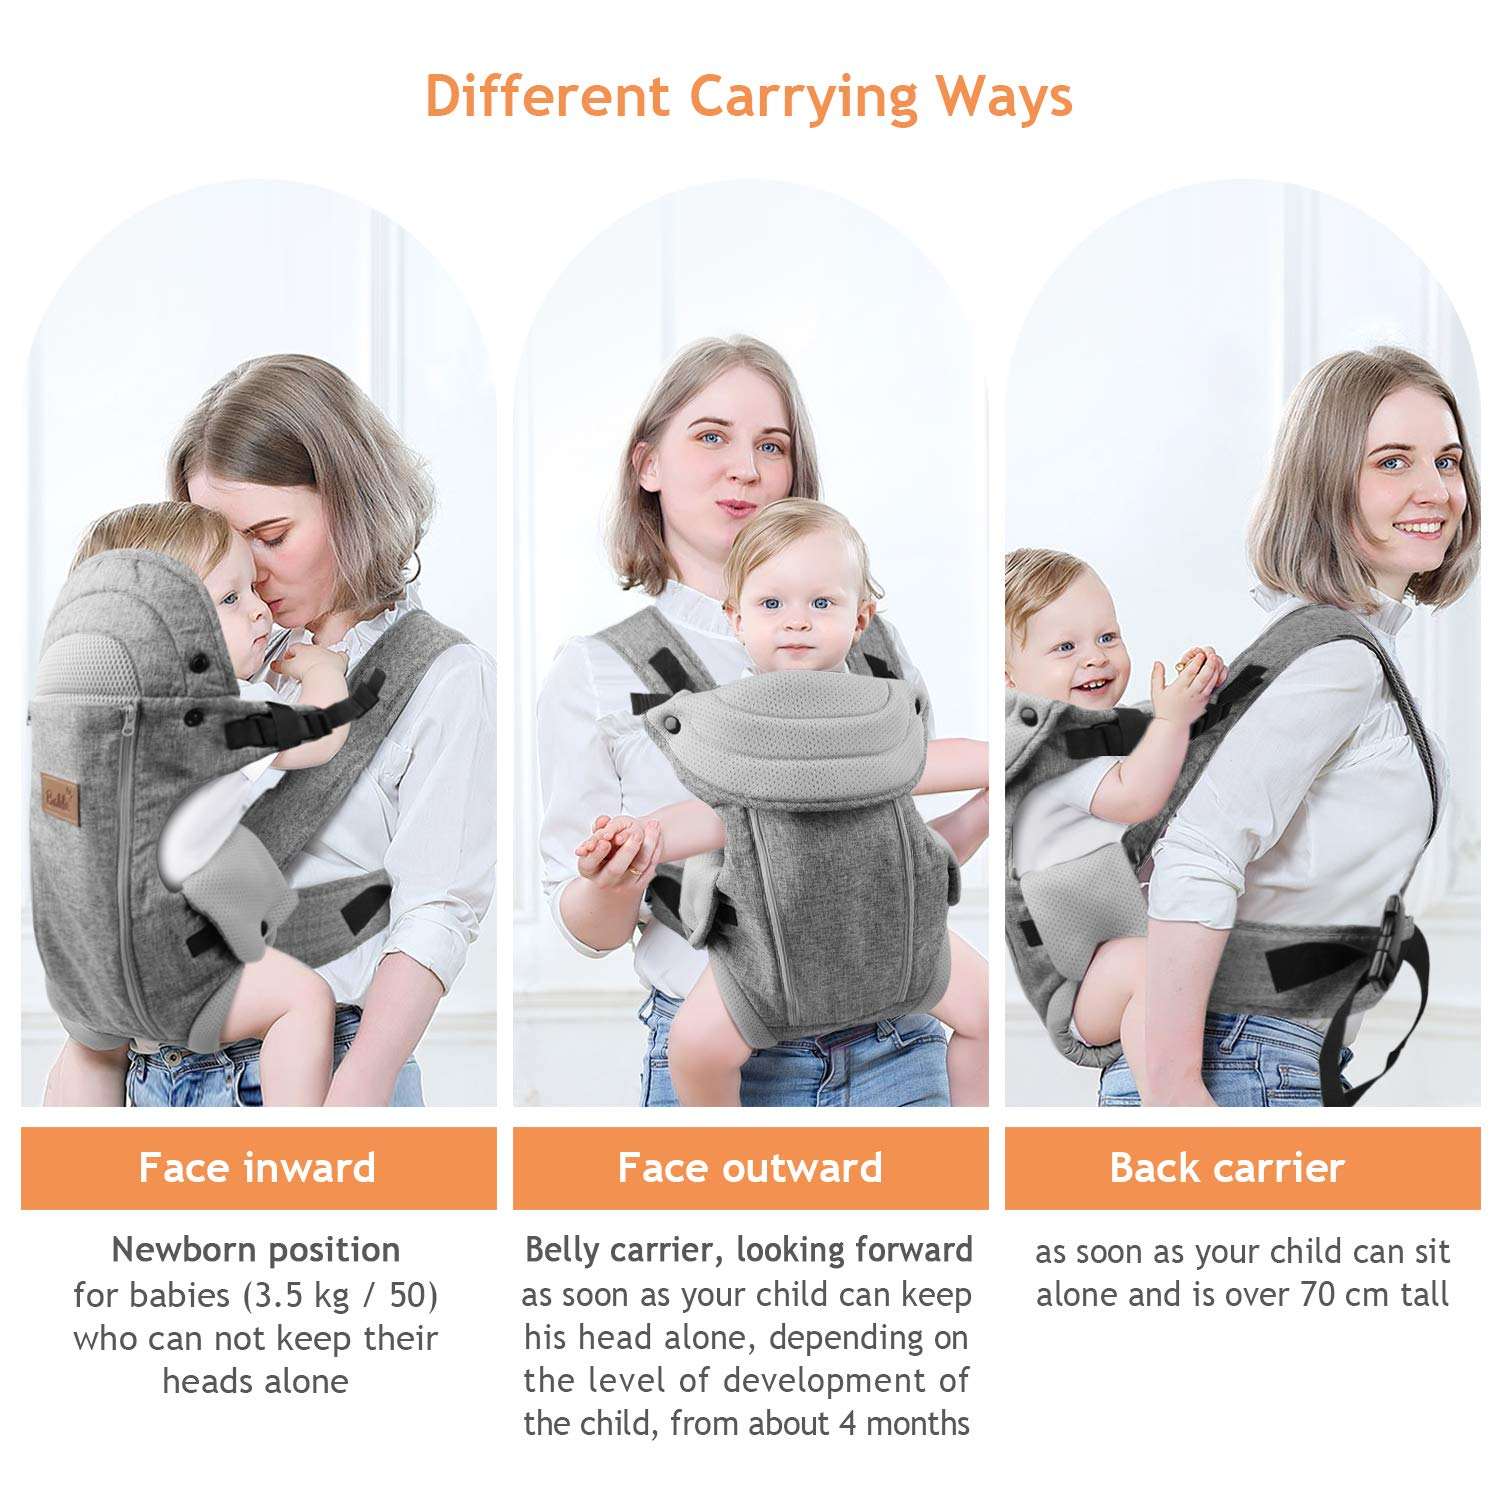 8-20 lbs 3.6-9 kg Easy to Put On for Newborn to 1 Year Old Baby Bable Soft and Cozy Ergonomic Baby Carrier Comfortably Carry Baby Flaxen Newborn Baby Carrier Multi-Position Carrier